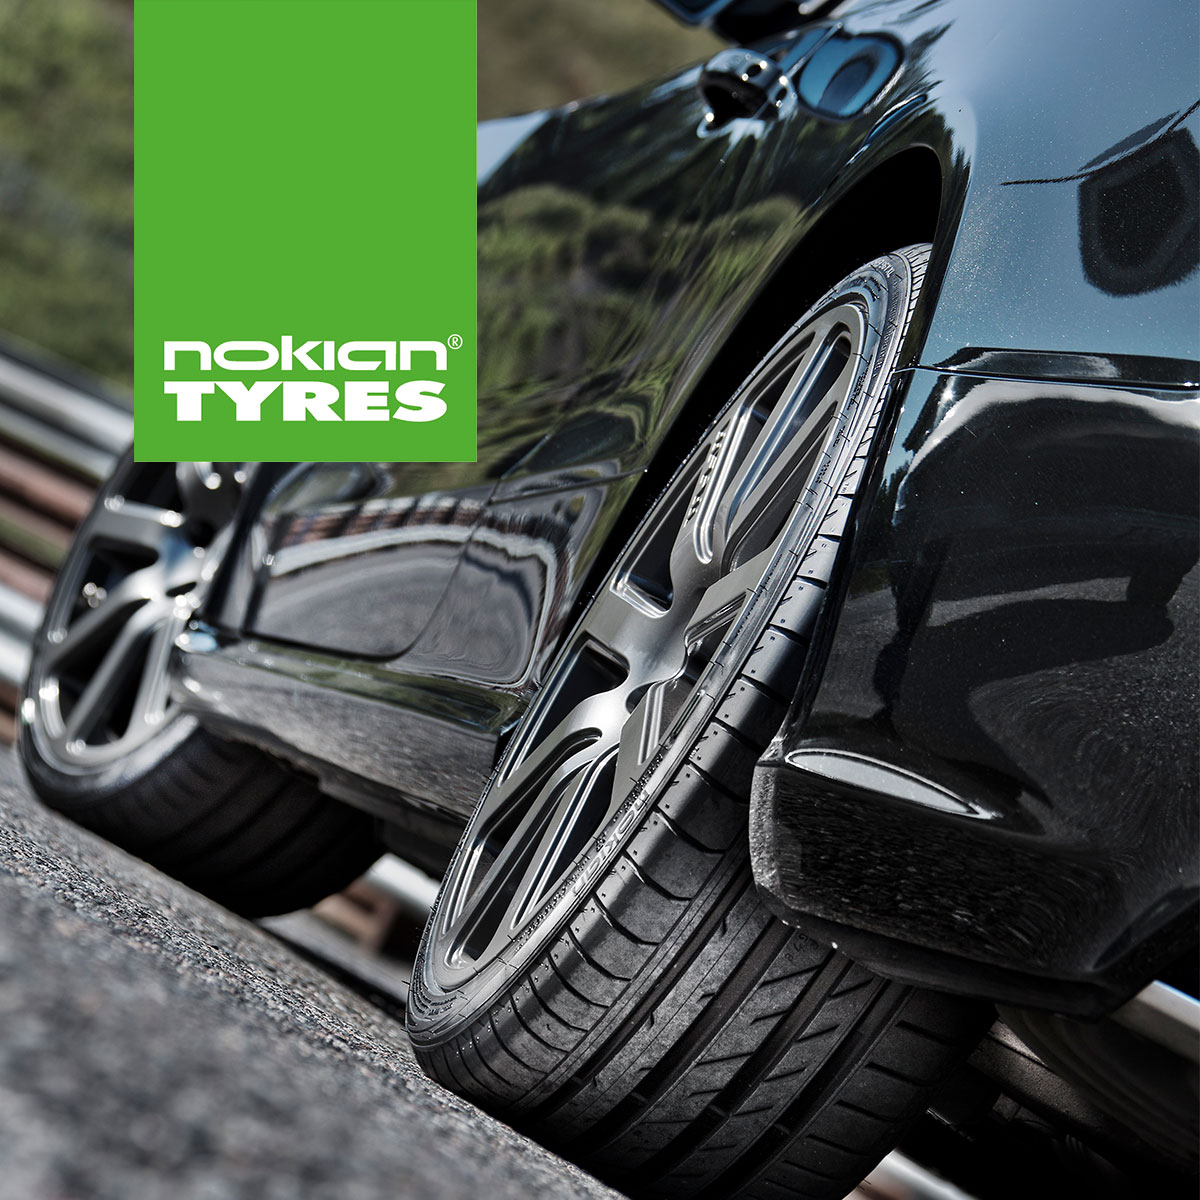 nokian hakkapeliitta 8 the most advanced studded tyre on the winter tyre market nokian tyres. Black Bedroom Furniture Sets. Home Design Ideas